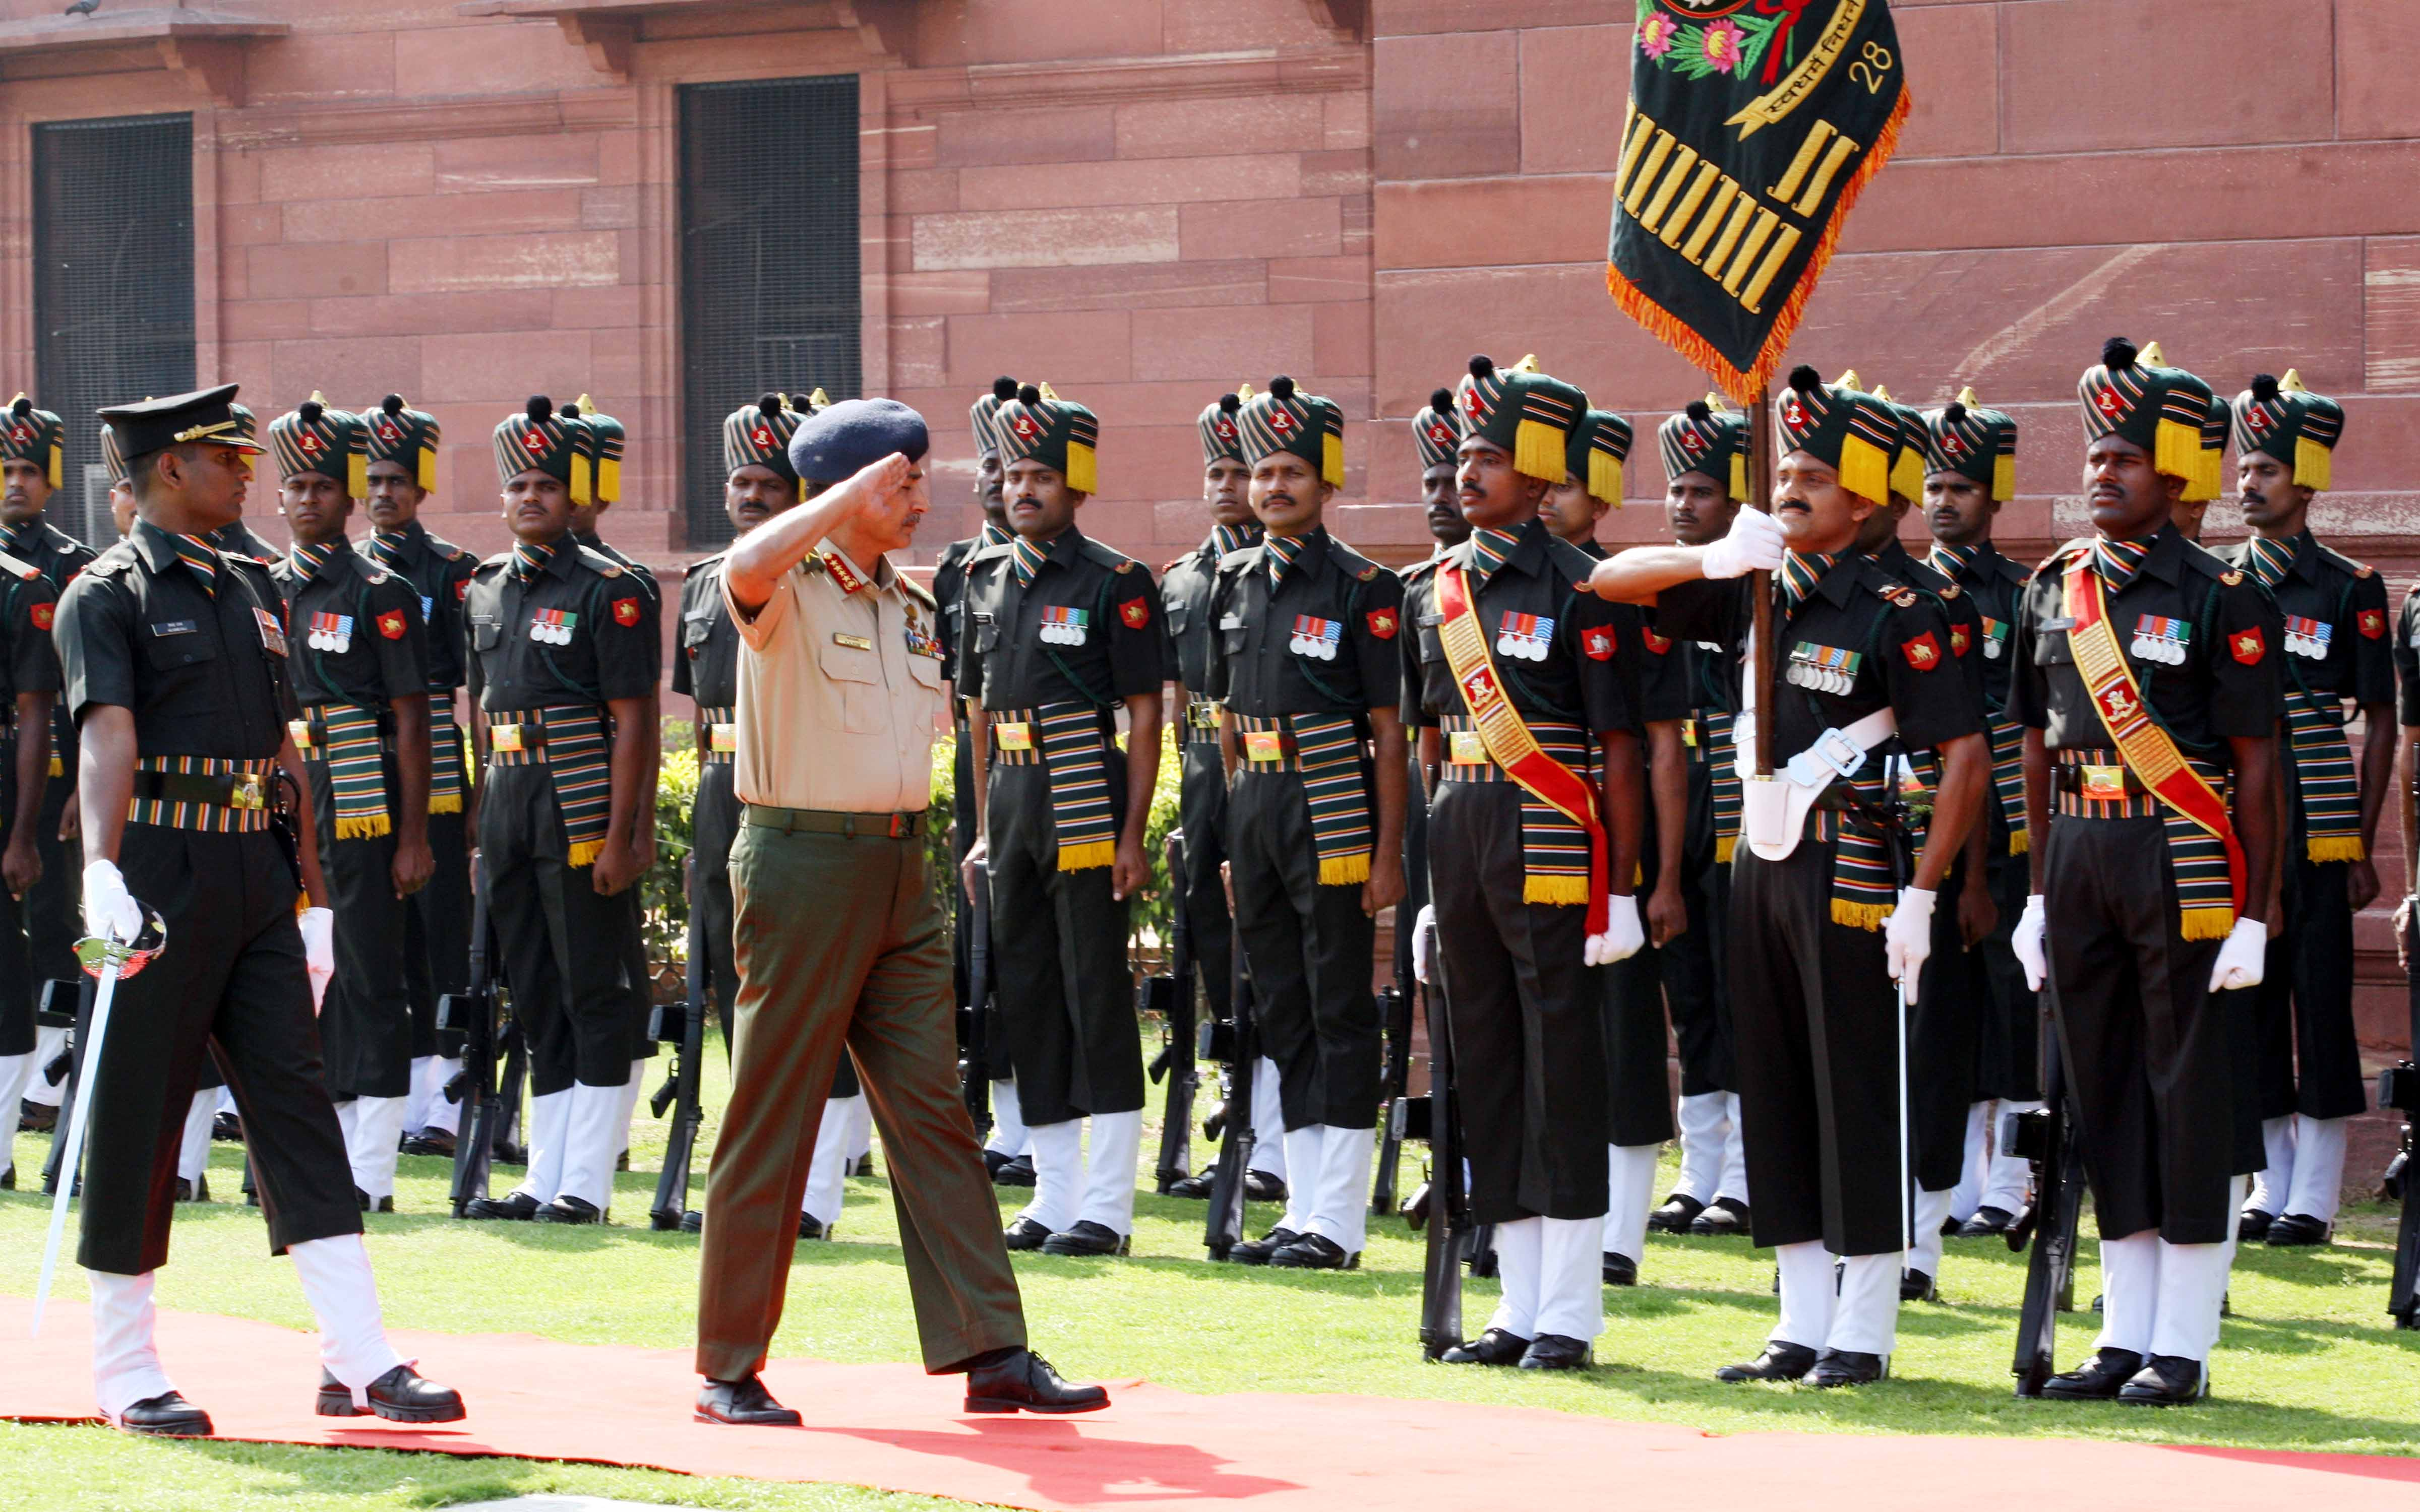 Bangladesh Army Chief Gen Iqbal Karim Bhuiyan inspecting Guard of Honour at South Block lawns  New Delhi  today